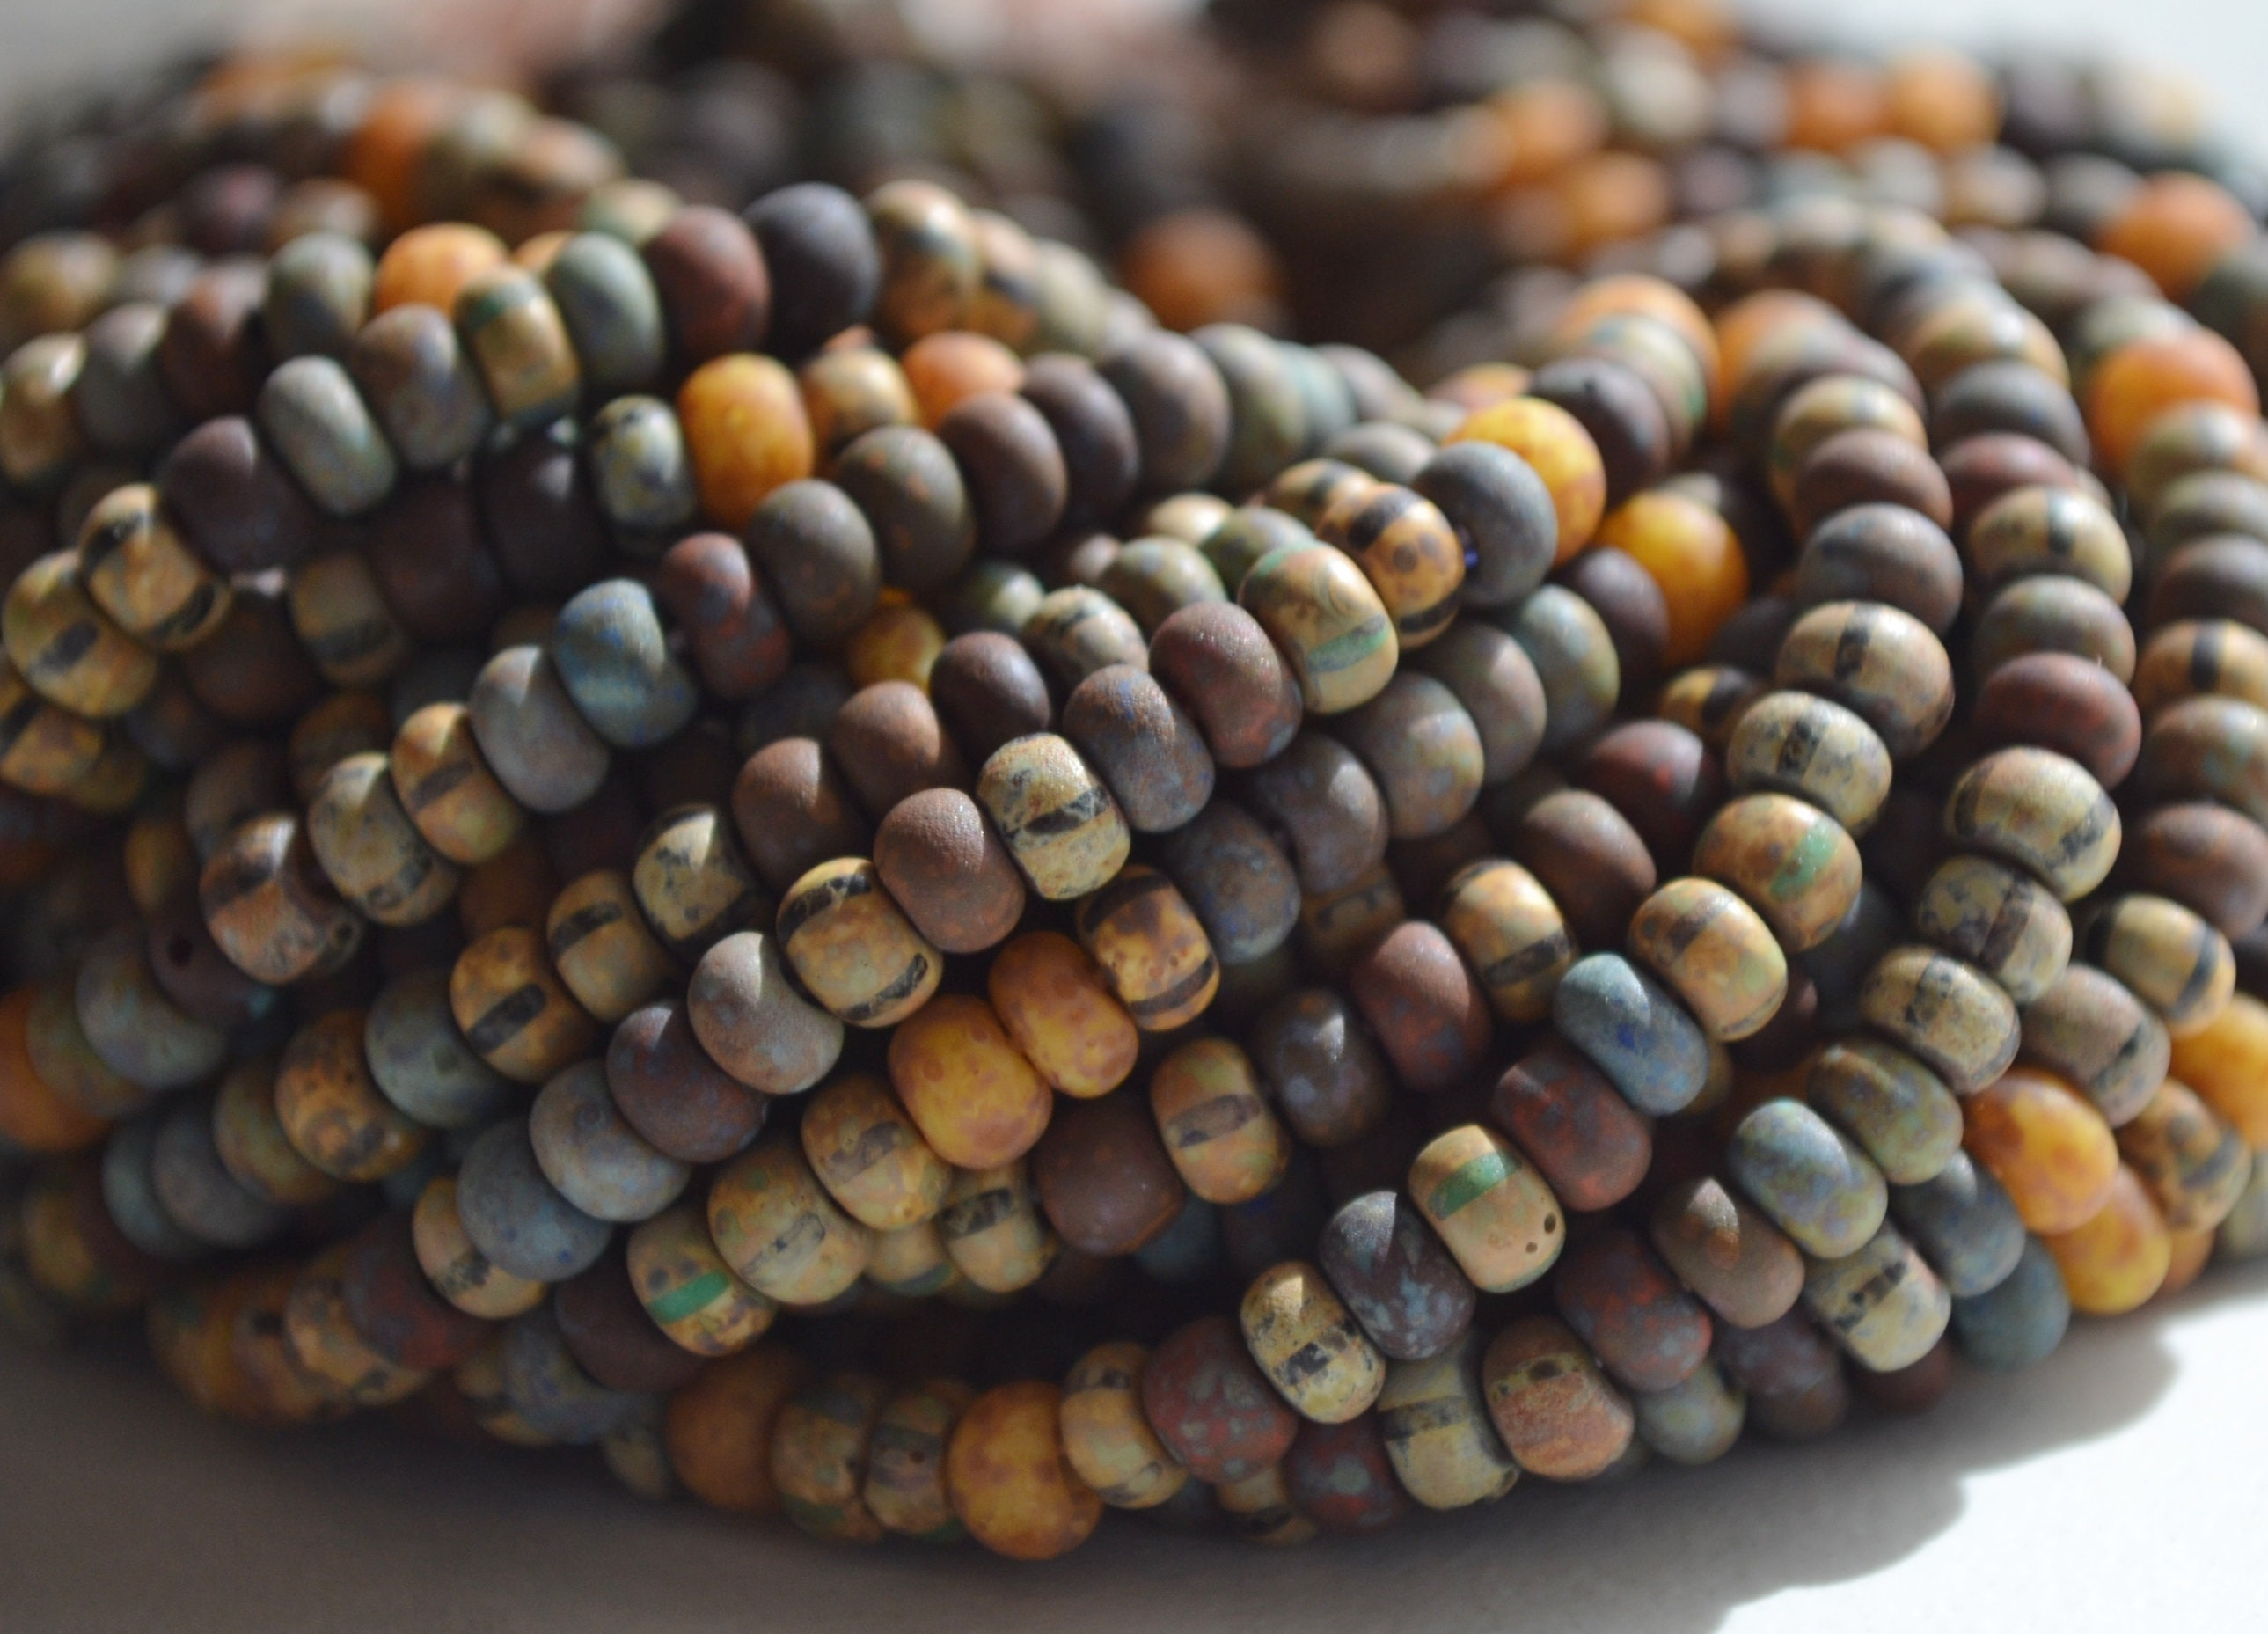 Blue and Beige Striped Picasso 40 Seed Bead Mix Aged Turquoise 1 Strand Item SB296